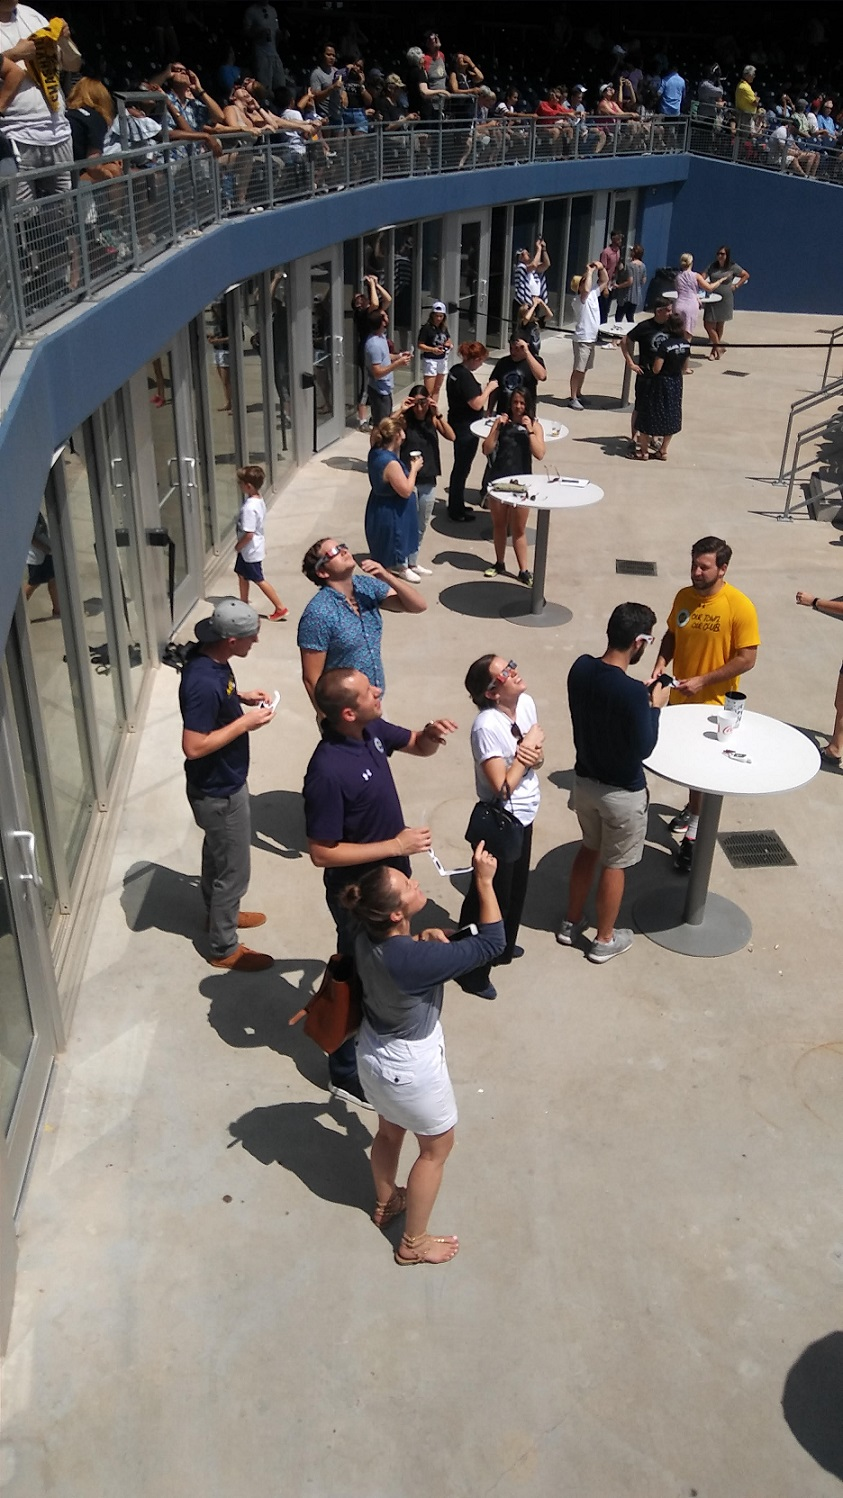 Nashville Sounds Crowd looking at the eclipse while wearing protective glasses on August 21, 2017